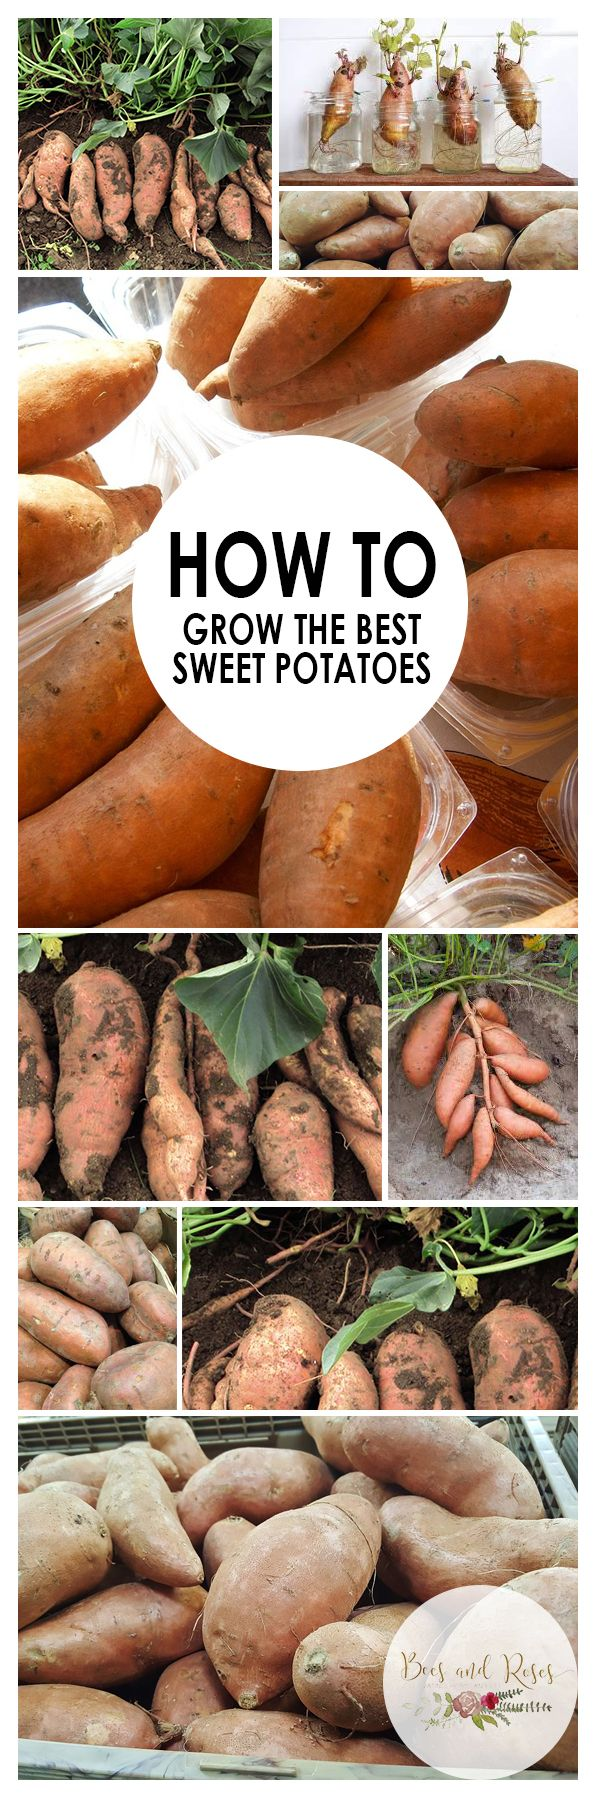 How to Grow the Best Sweet Potatoes